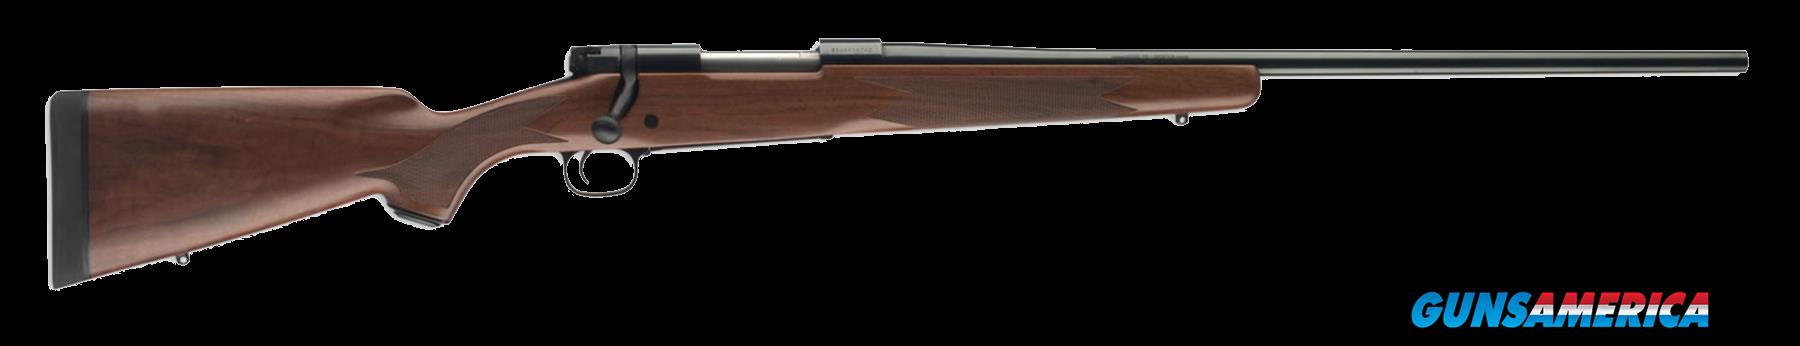 "Winchester Guns 535202233 70 Sporter Bolt 300 Win Mag 26"" 5+1 Grade I Walnut Stk Blued  Guns > Rifles > Winchester Rifles - Modern Bolt/Auto/Single > Model 70 > Post-64"